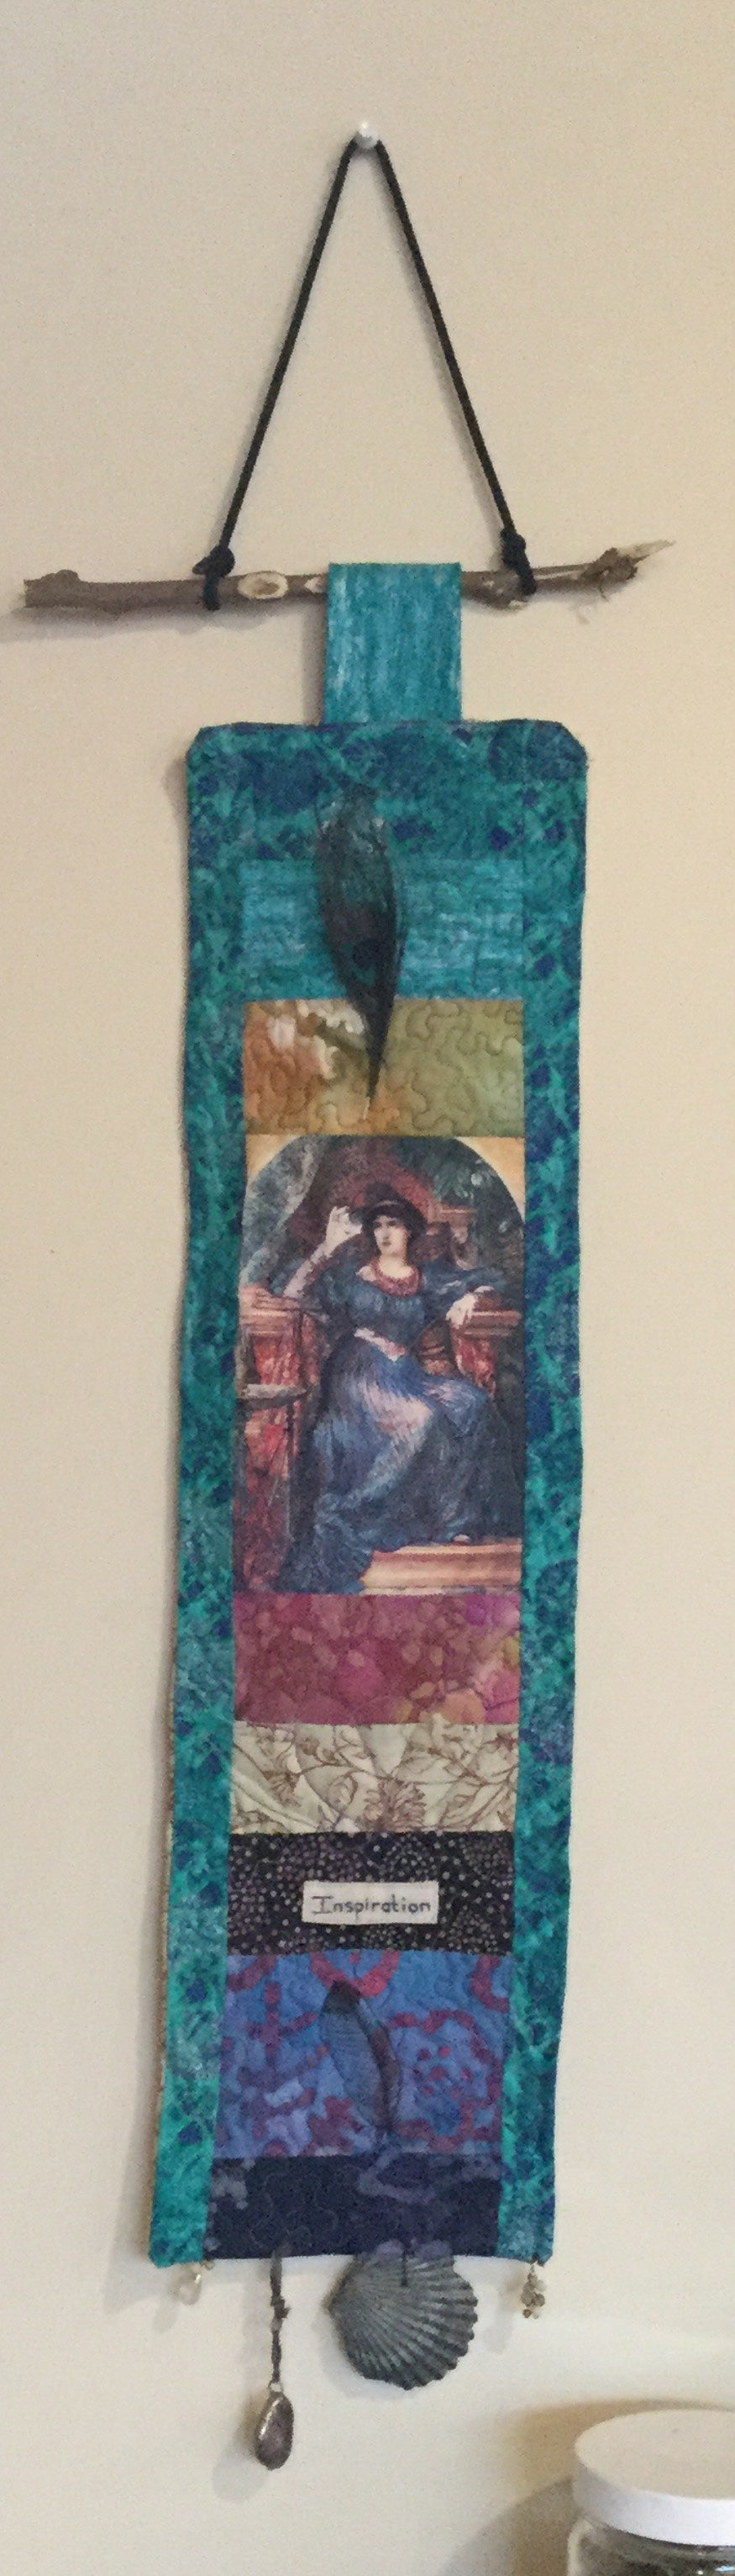 Mary's Hand made Tapestry